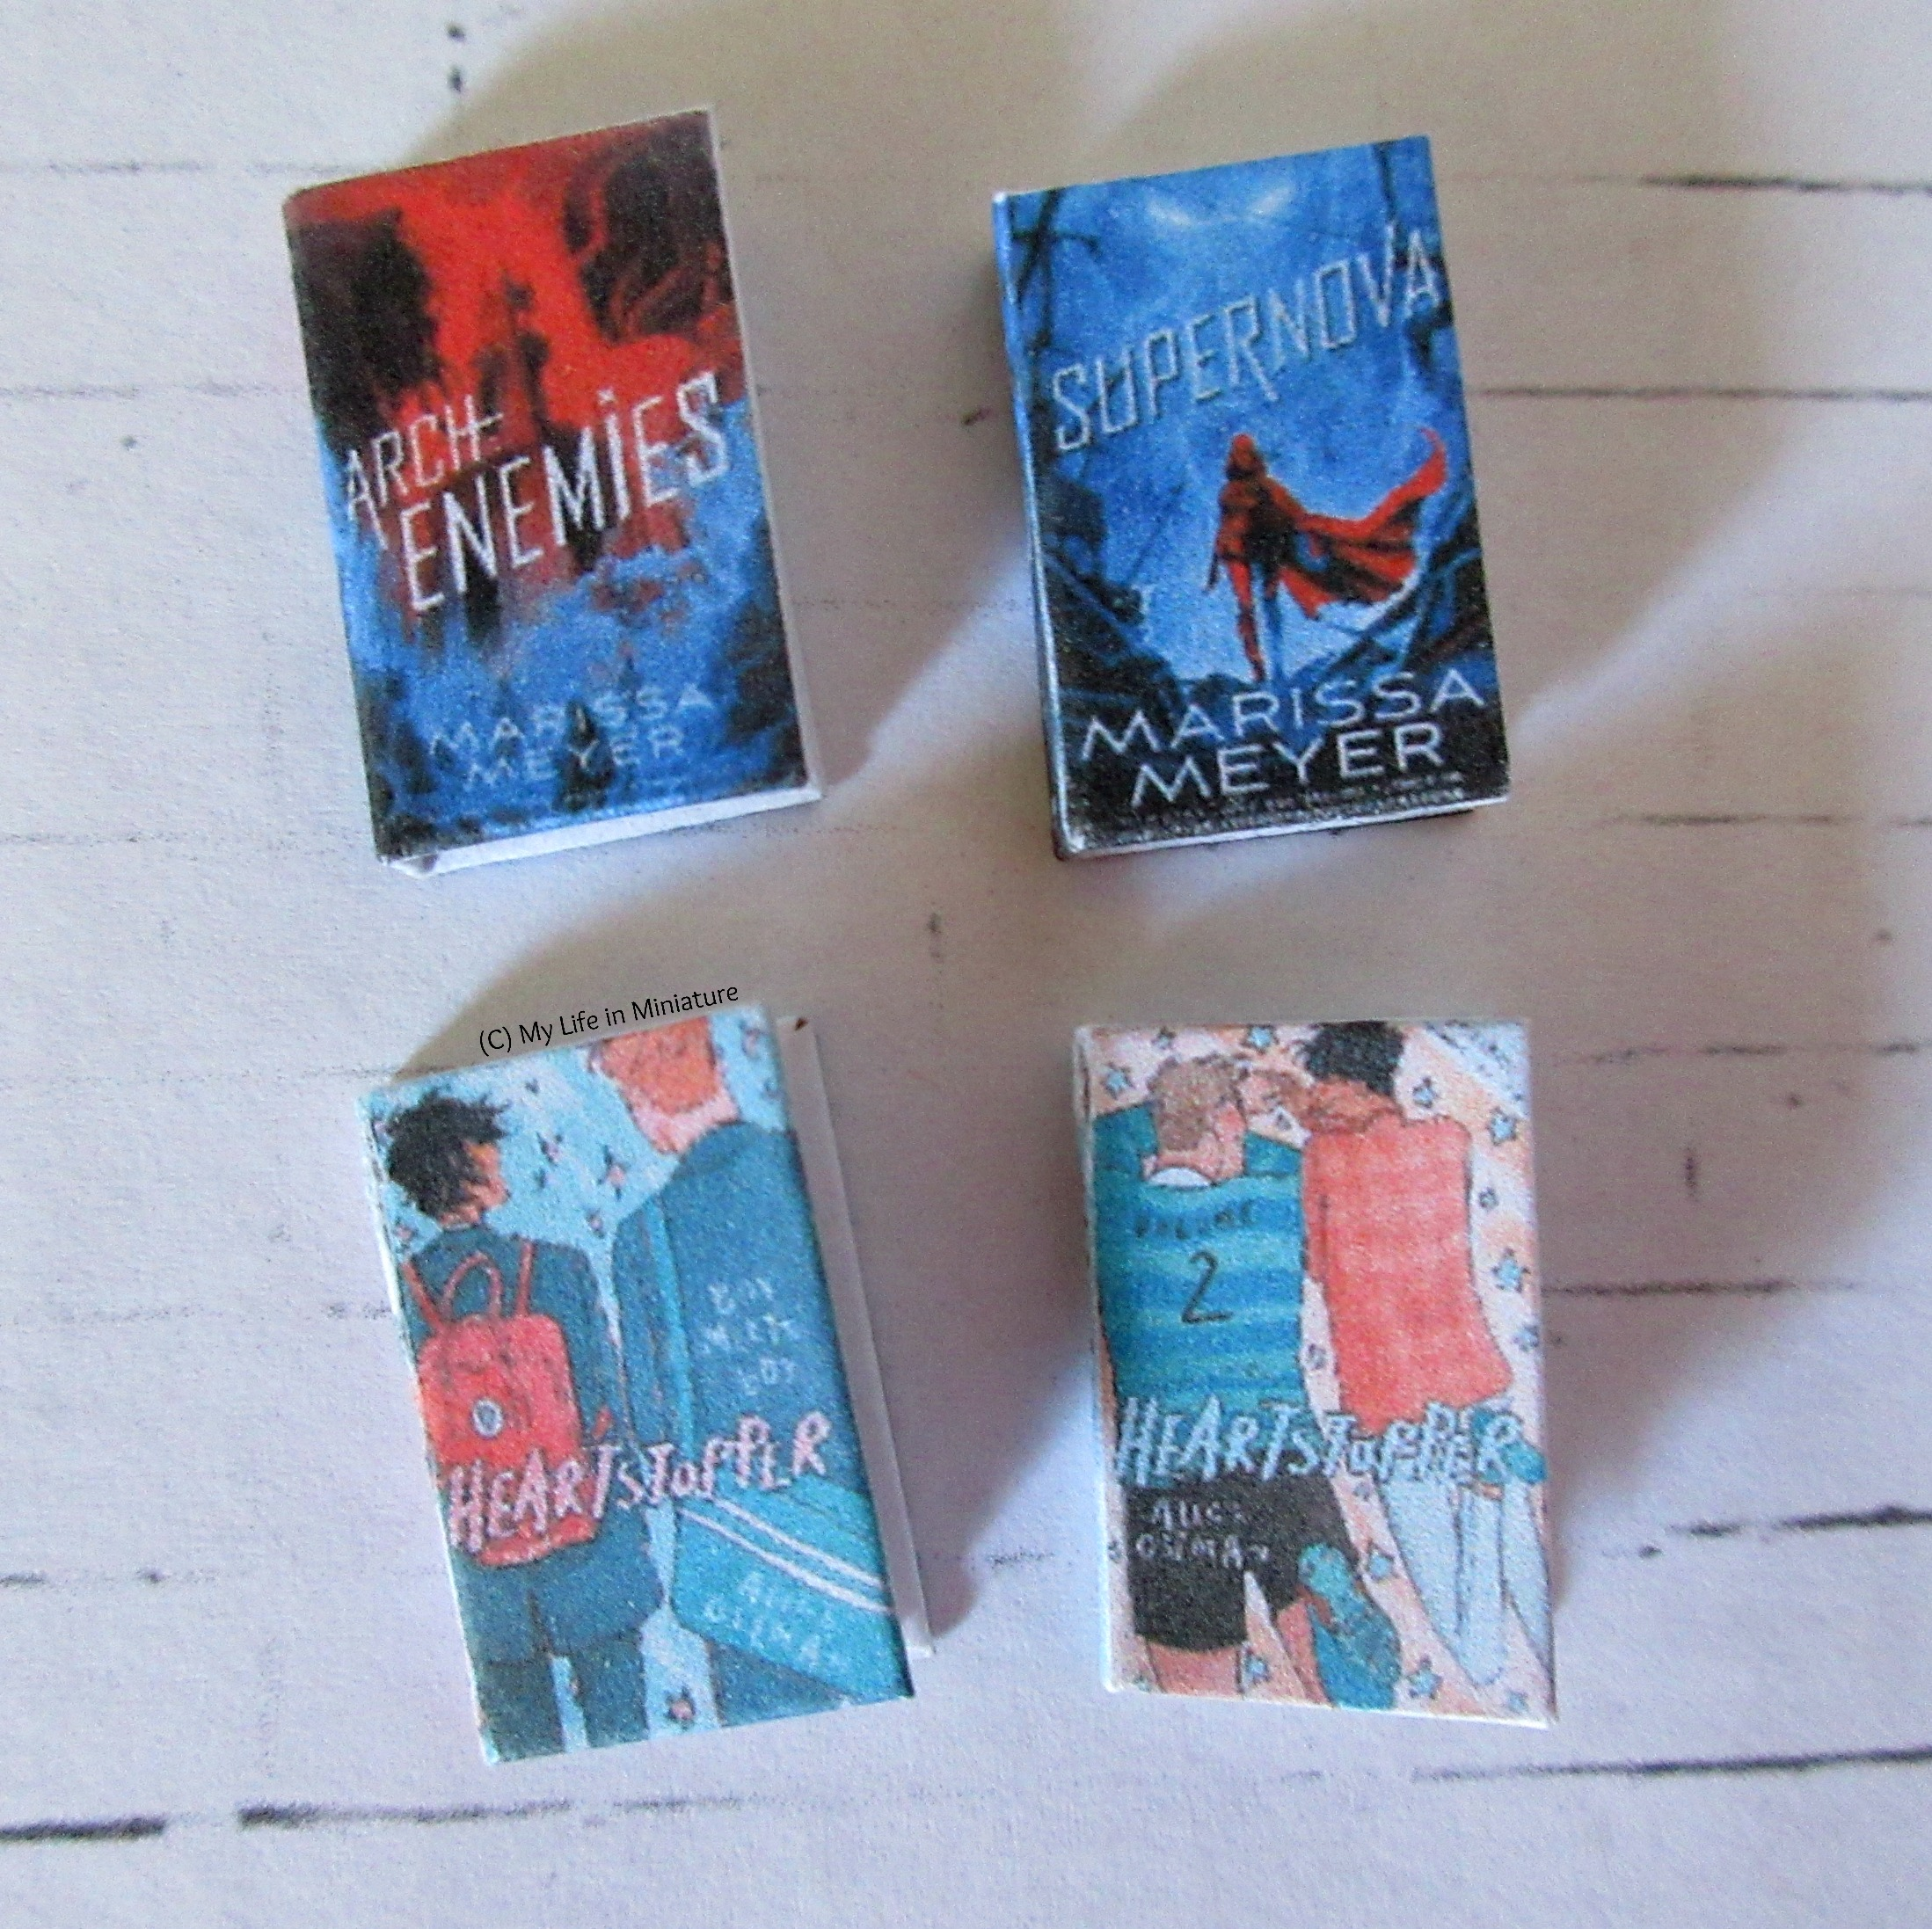 Four miniature books lie on a white brick background, covers facing the camera. Archenemies and Supernova by Marissa Meyer are above Heartstopper volumes 1 and 2 by Alice Oseman.